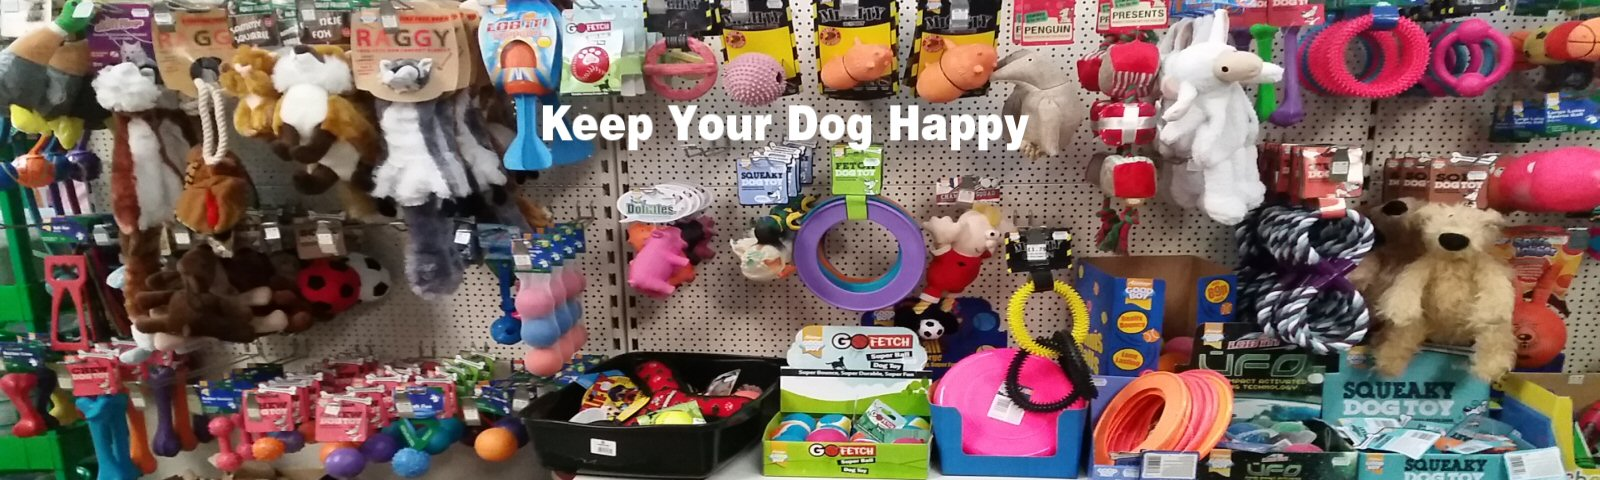 Great Selection of Toys & Treats